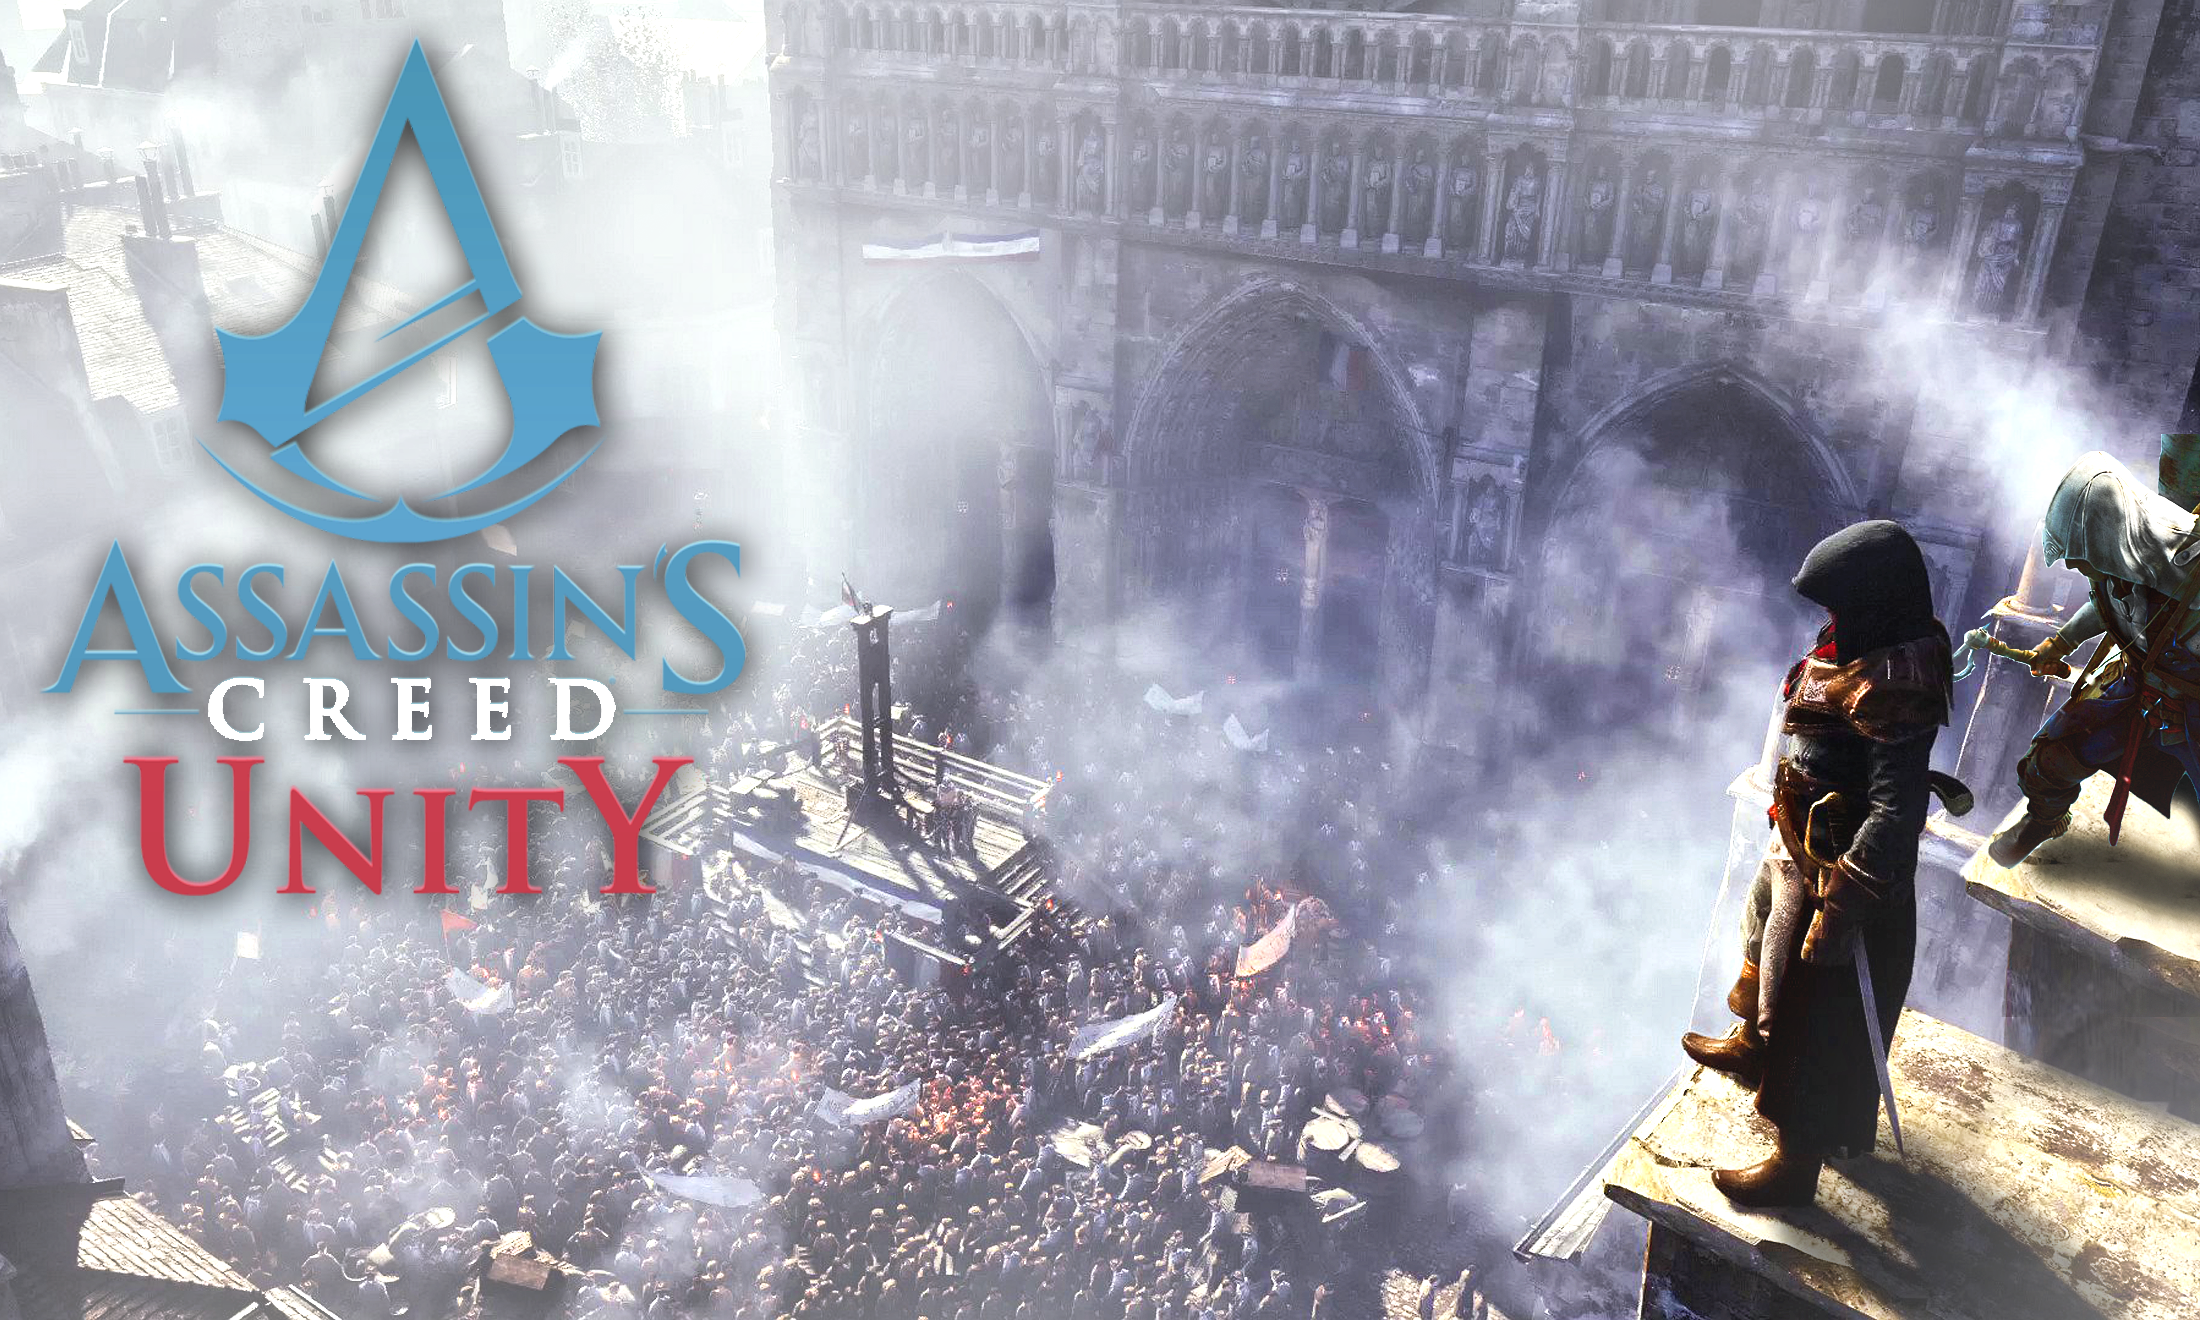 Assassins creed unity wallpaper w connor assassinscreed - Assassin s creed unity wallpaper ...